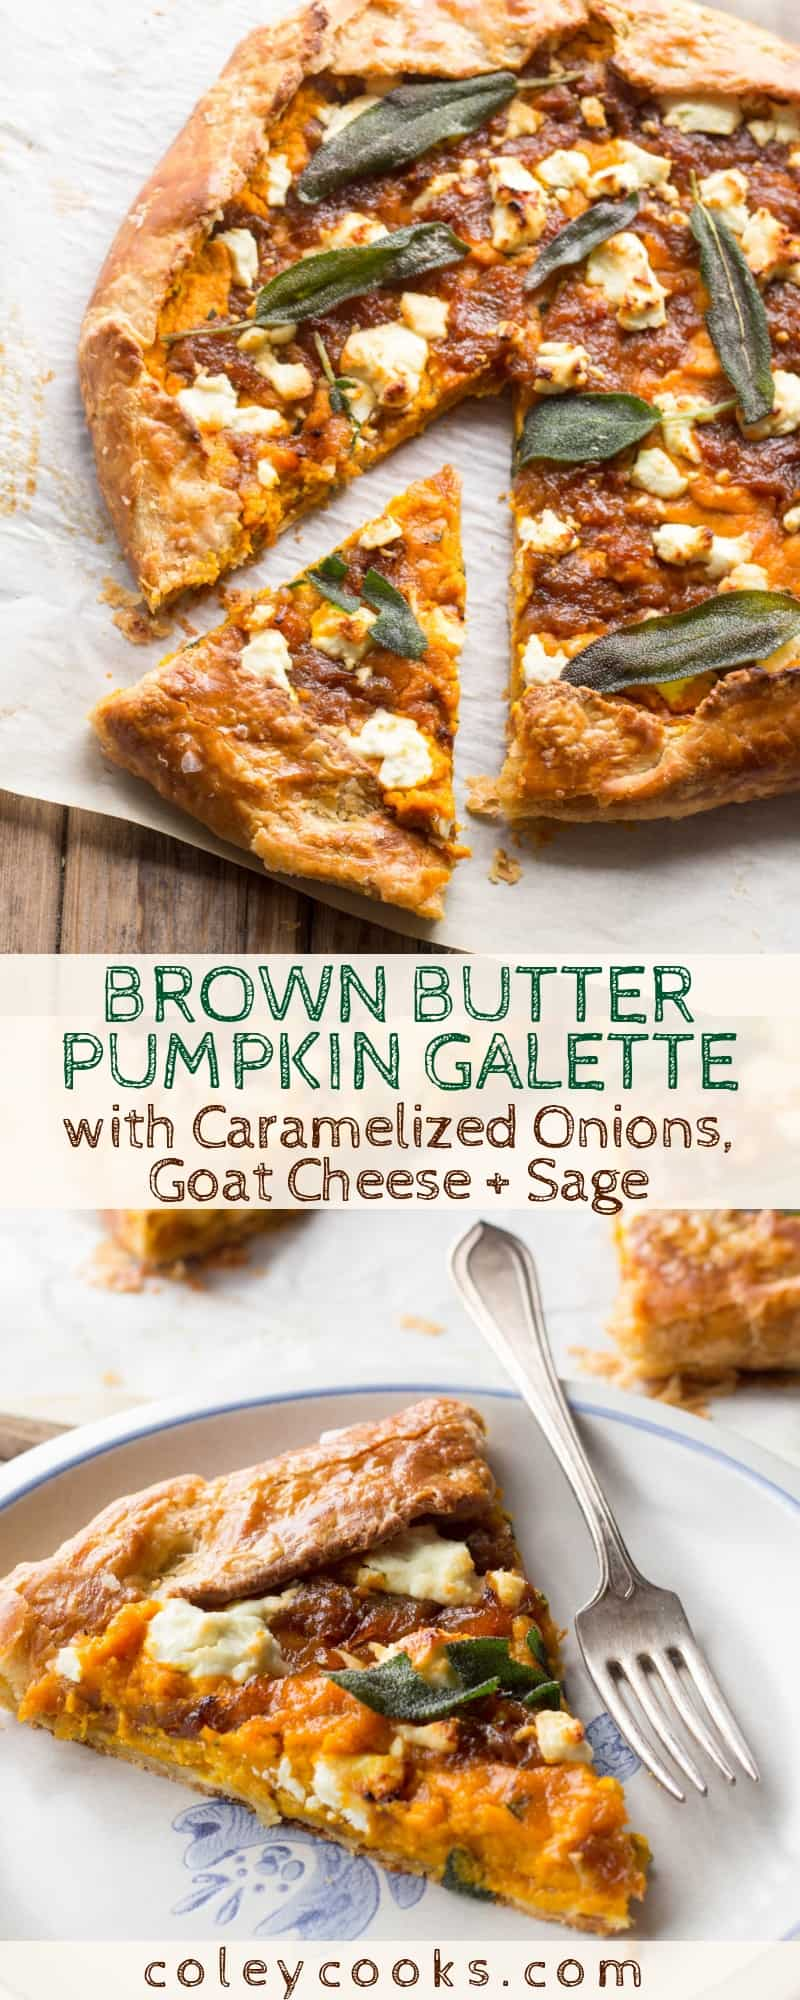 Brown Butter Pumpkin Galette with Caramelized Onions, Goat Cheese + Sage | This amazing savory pie recipe makes the best Thanksgiving appetizer! #thanksgiving #recipe #appetizer #side #pumpkin #pie #savory #brownbutter | ColeyCooks.com